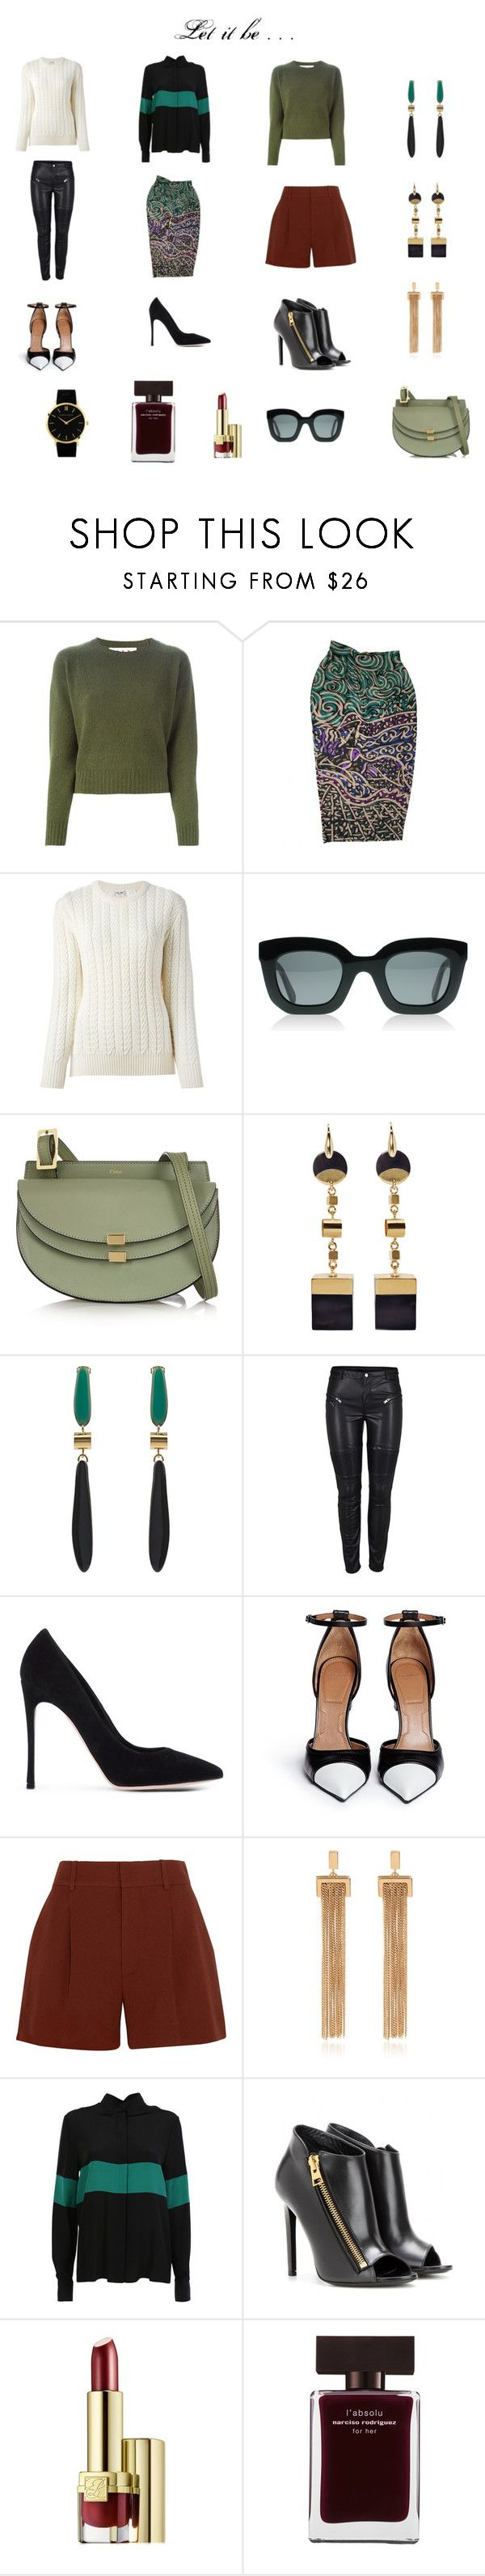 """""""Let it be"""" by mousouza on Polyvore featuring Marni, Missoni, CÉLINE, Chloé, Isabel Marant, Gianvito Rossi, Givenchy, Fendi, Tom Ford and Estée Lauder"""